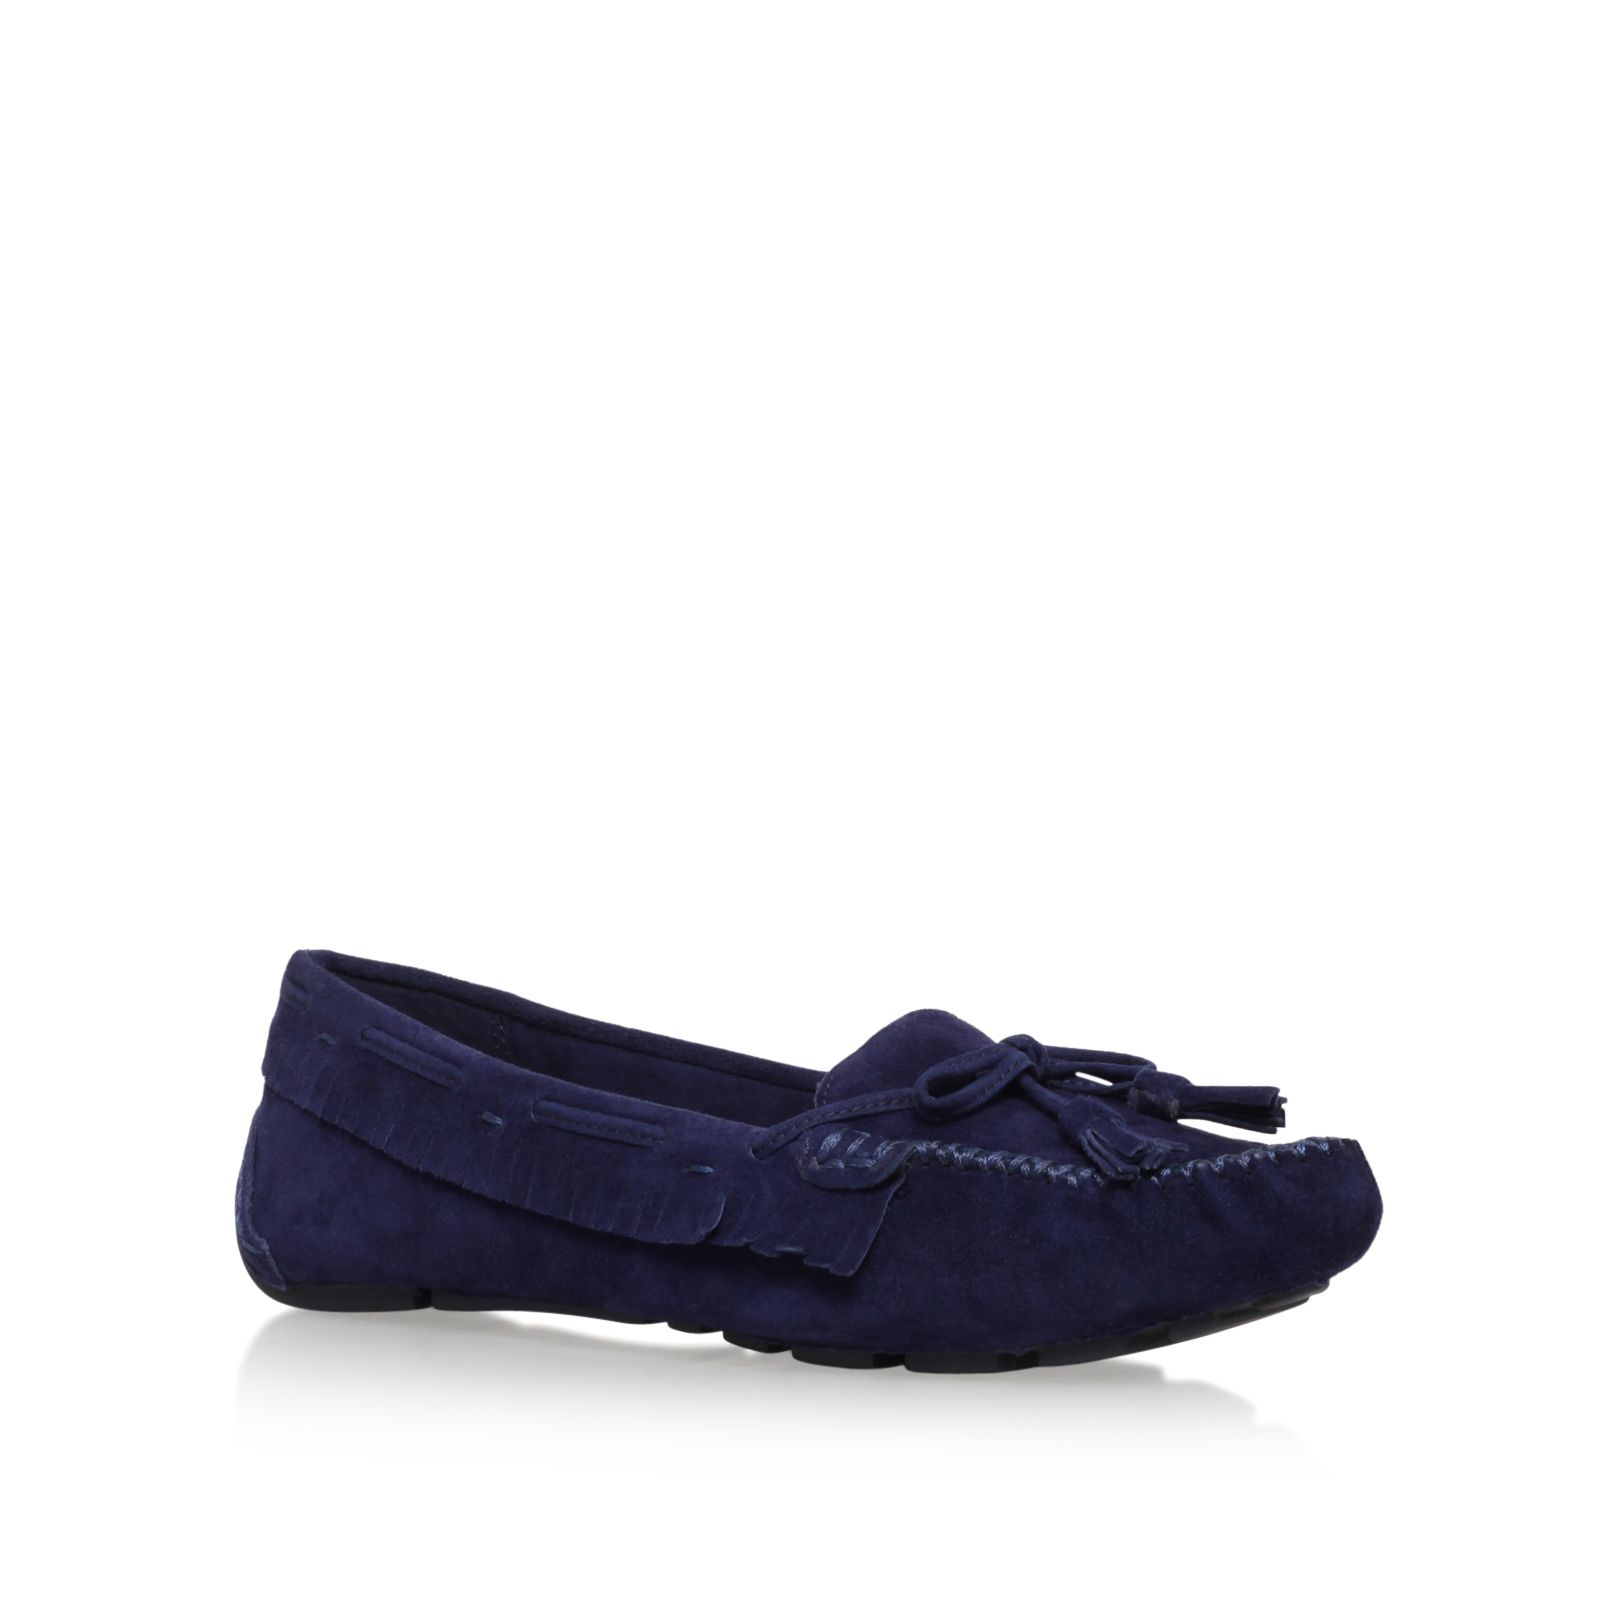 Nine West Nine West Begone flat loafers, Navy